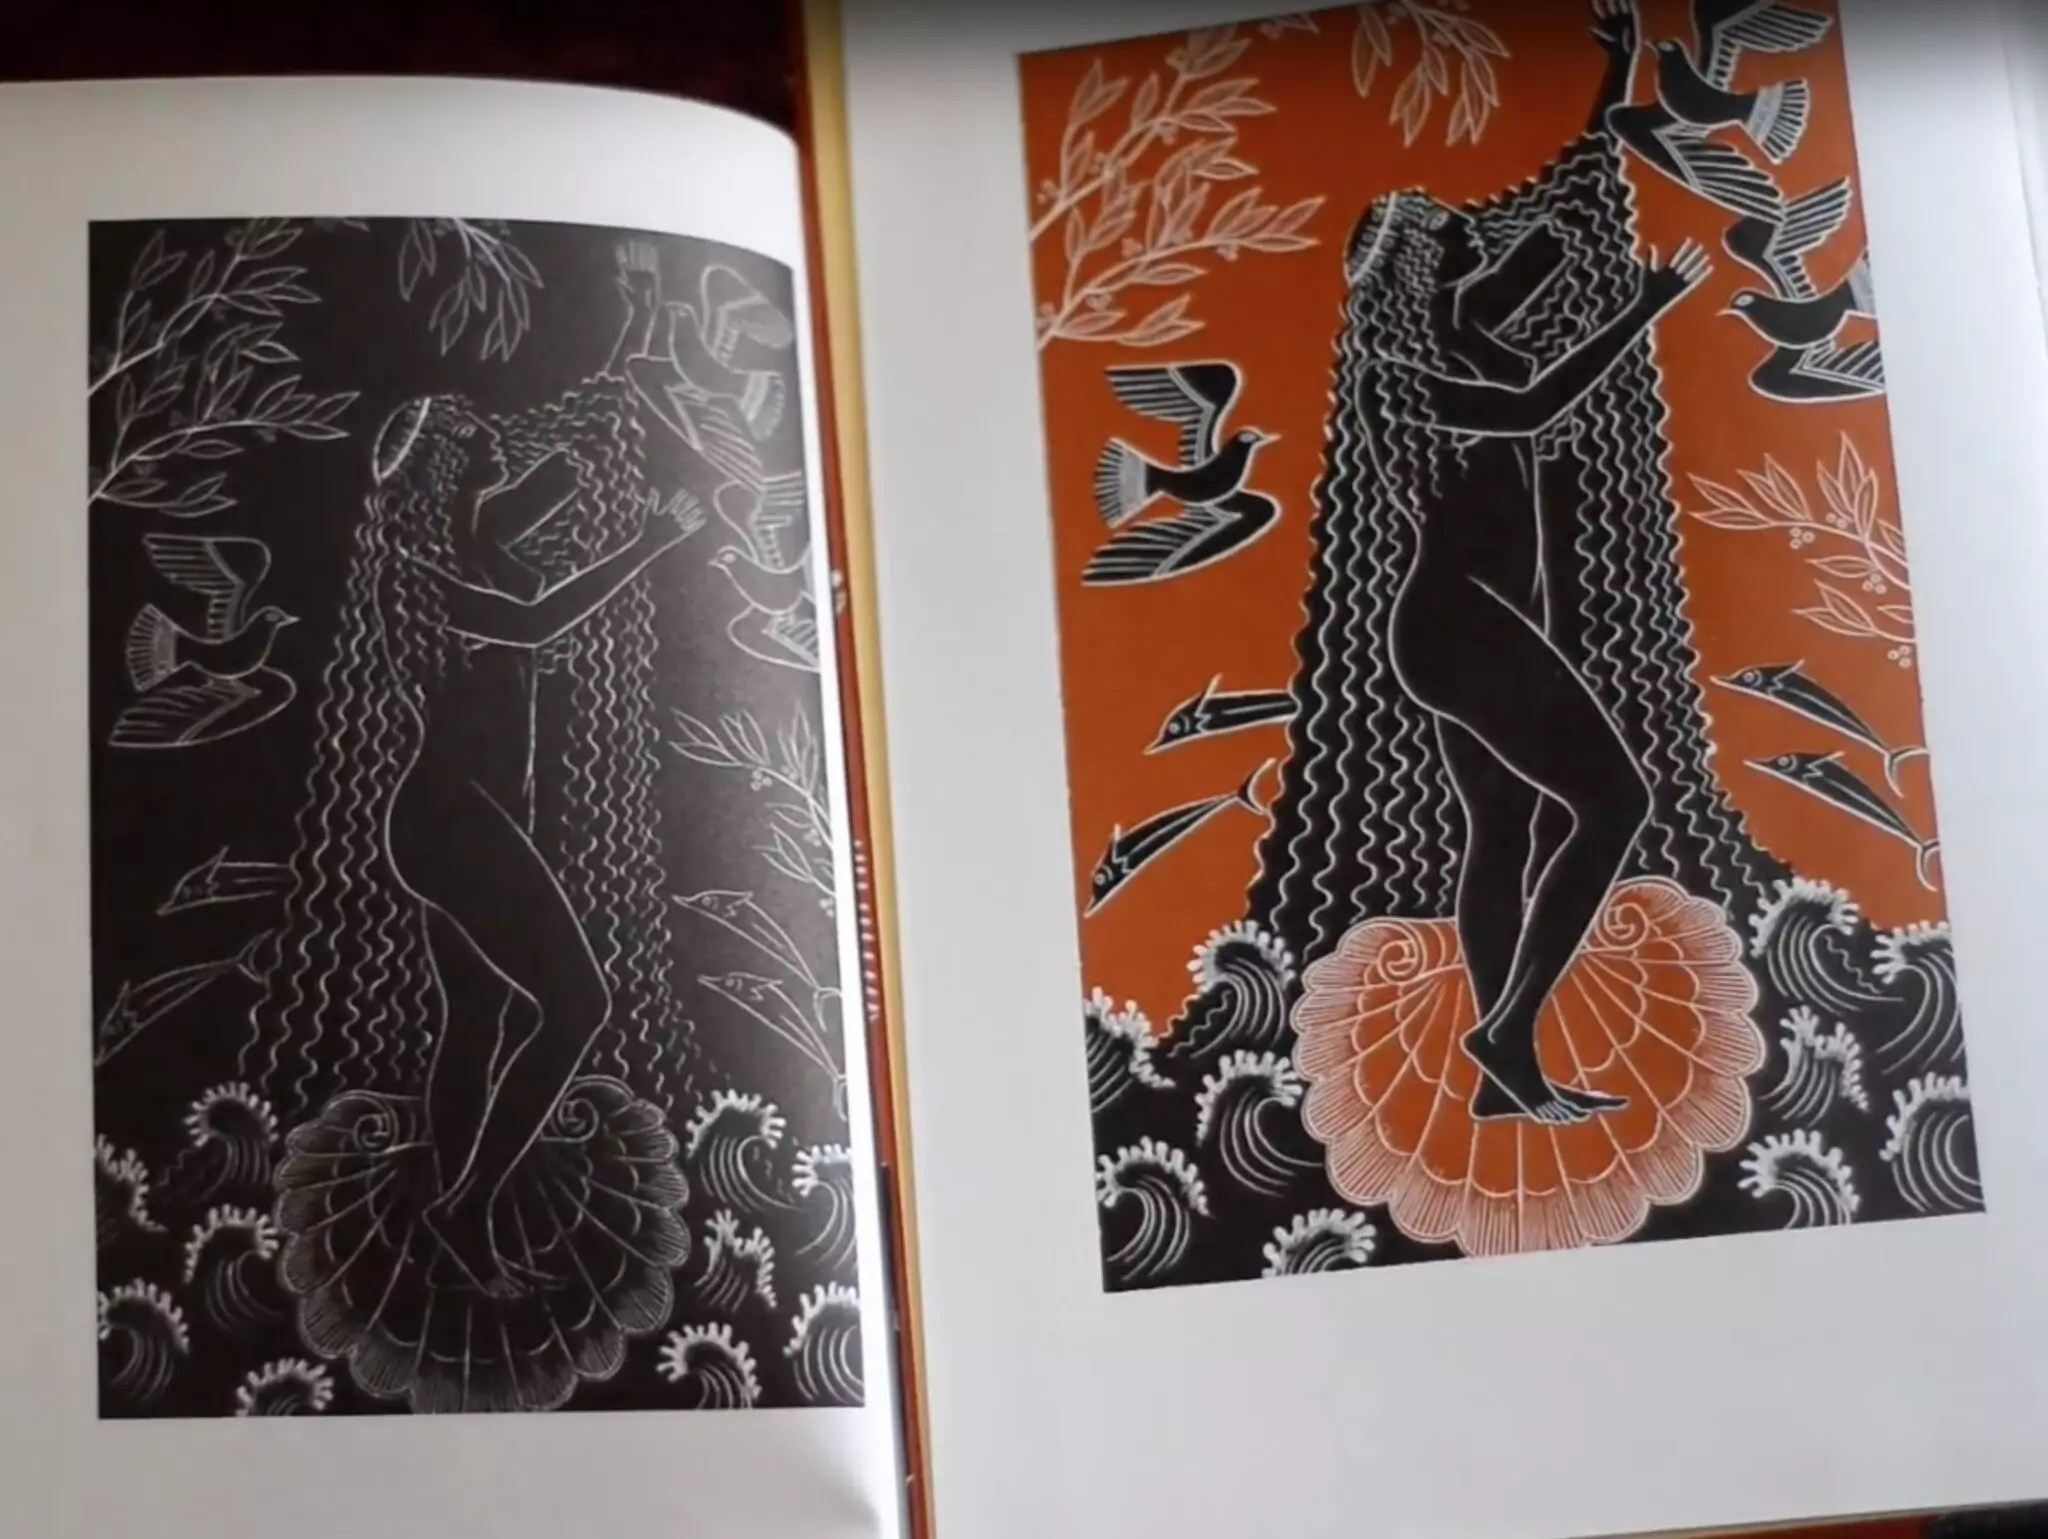 Compare illustrations from 1- and 2-vol FS Greek Myths – beautifulbooks.info